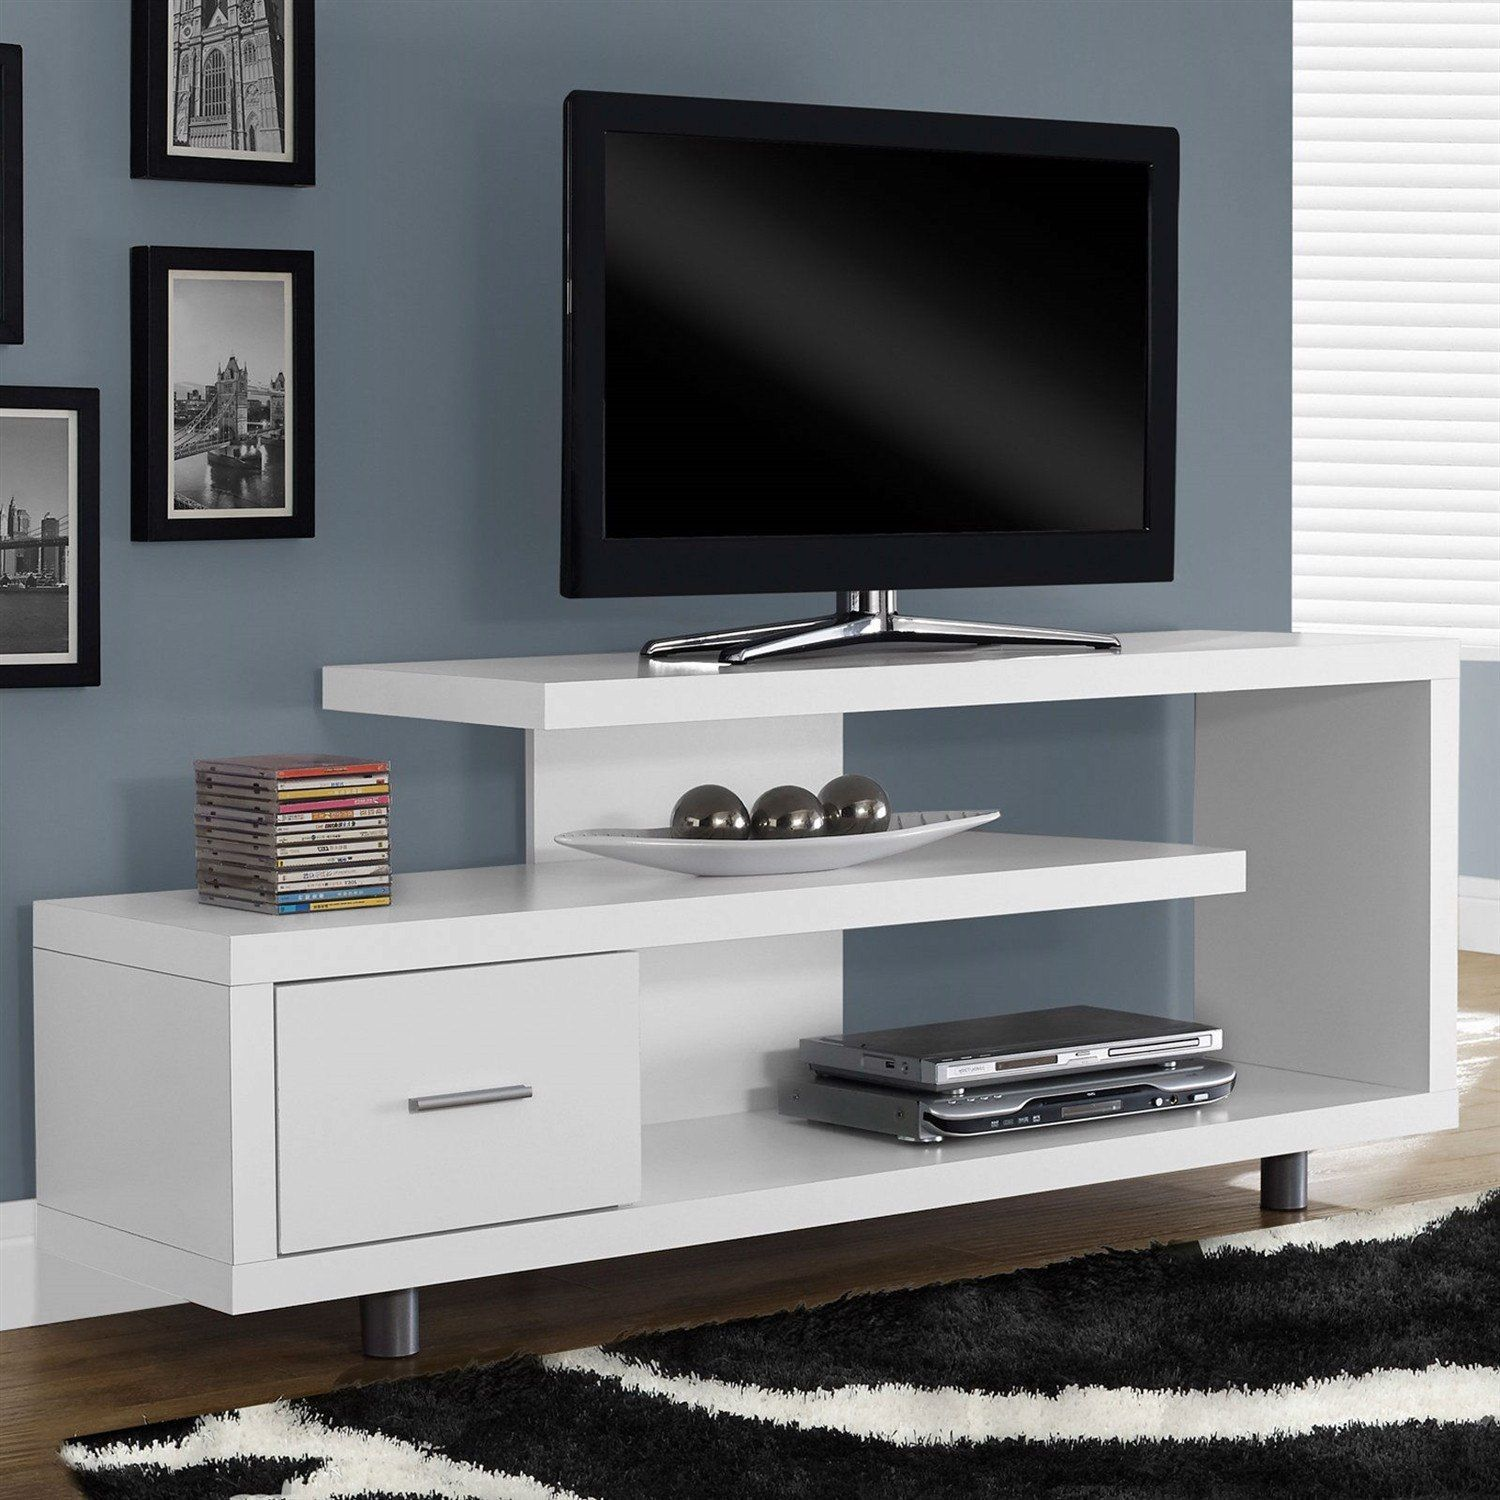 Modern Tv White Modern Tv Stand Fits Up To 60 Inch Flat Screen Tv Home